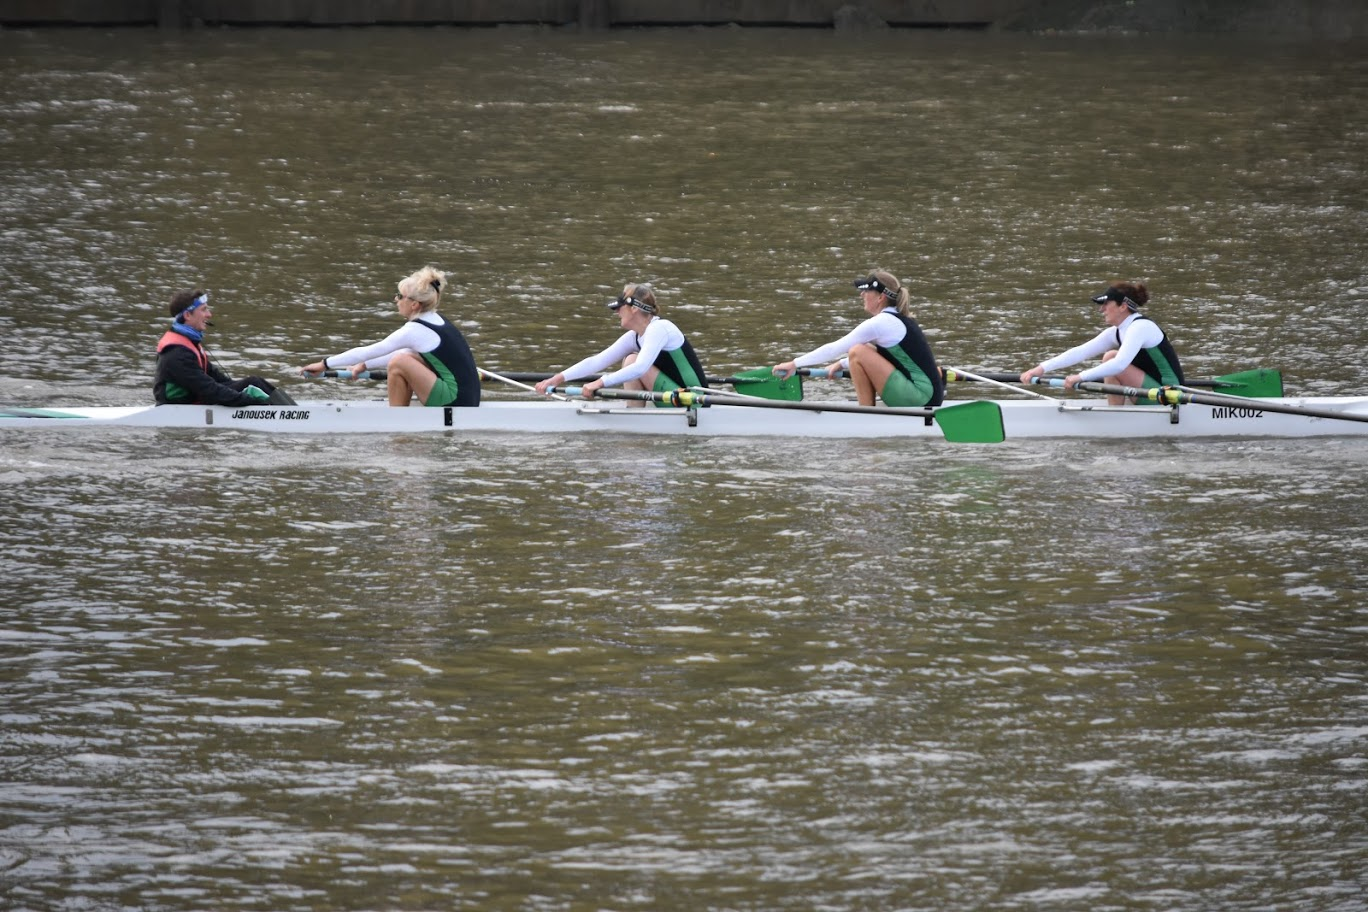 Women's D4+ crew in action on the Tideway